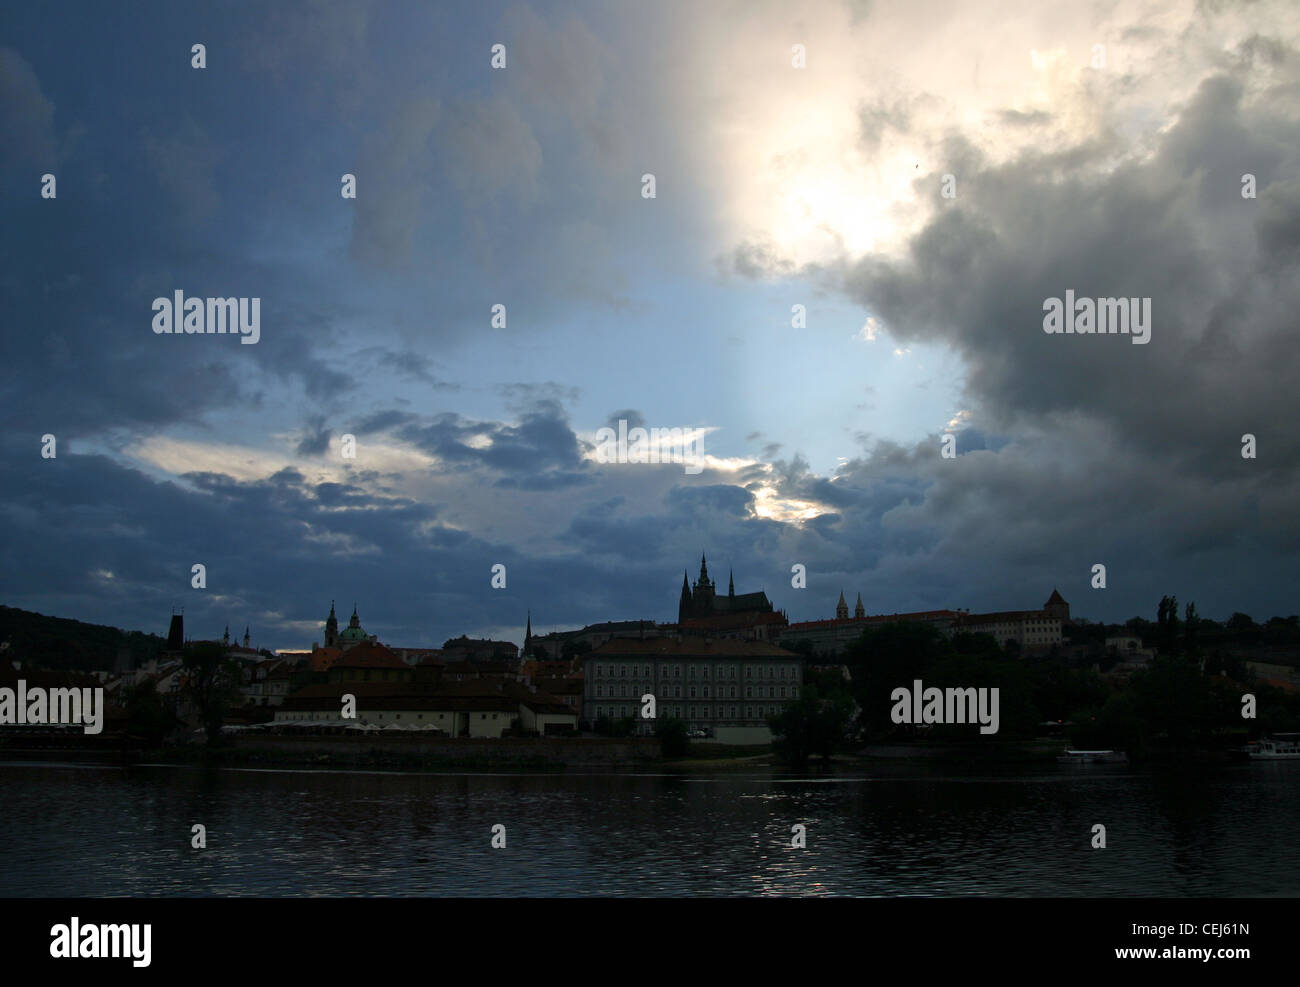 Prague Castle at dusk with the Vltava river in front. Stock Photo